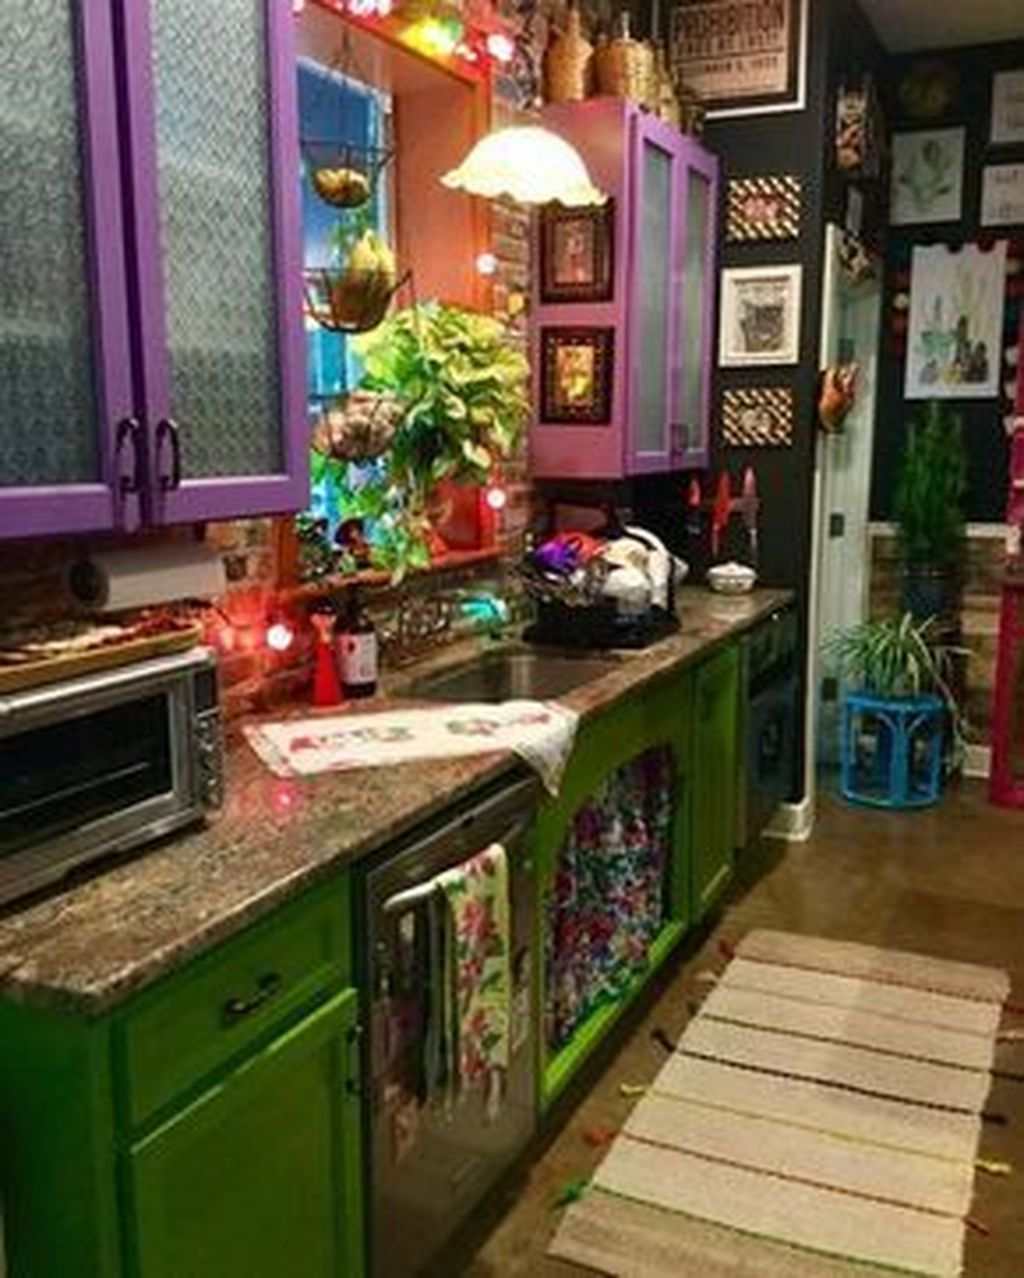 20 fascinating bohemian kitchen decorating ideas bohemian kitchen boho kitchen decor on hippie kitchen ideas boho chic id=25479